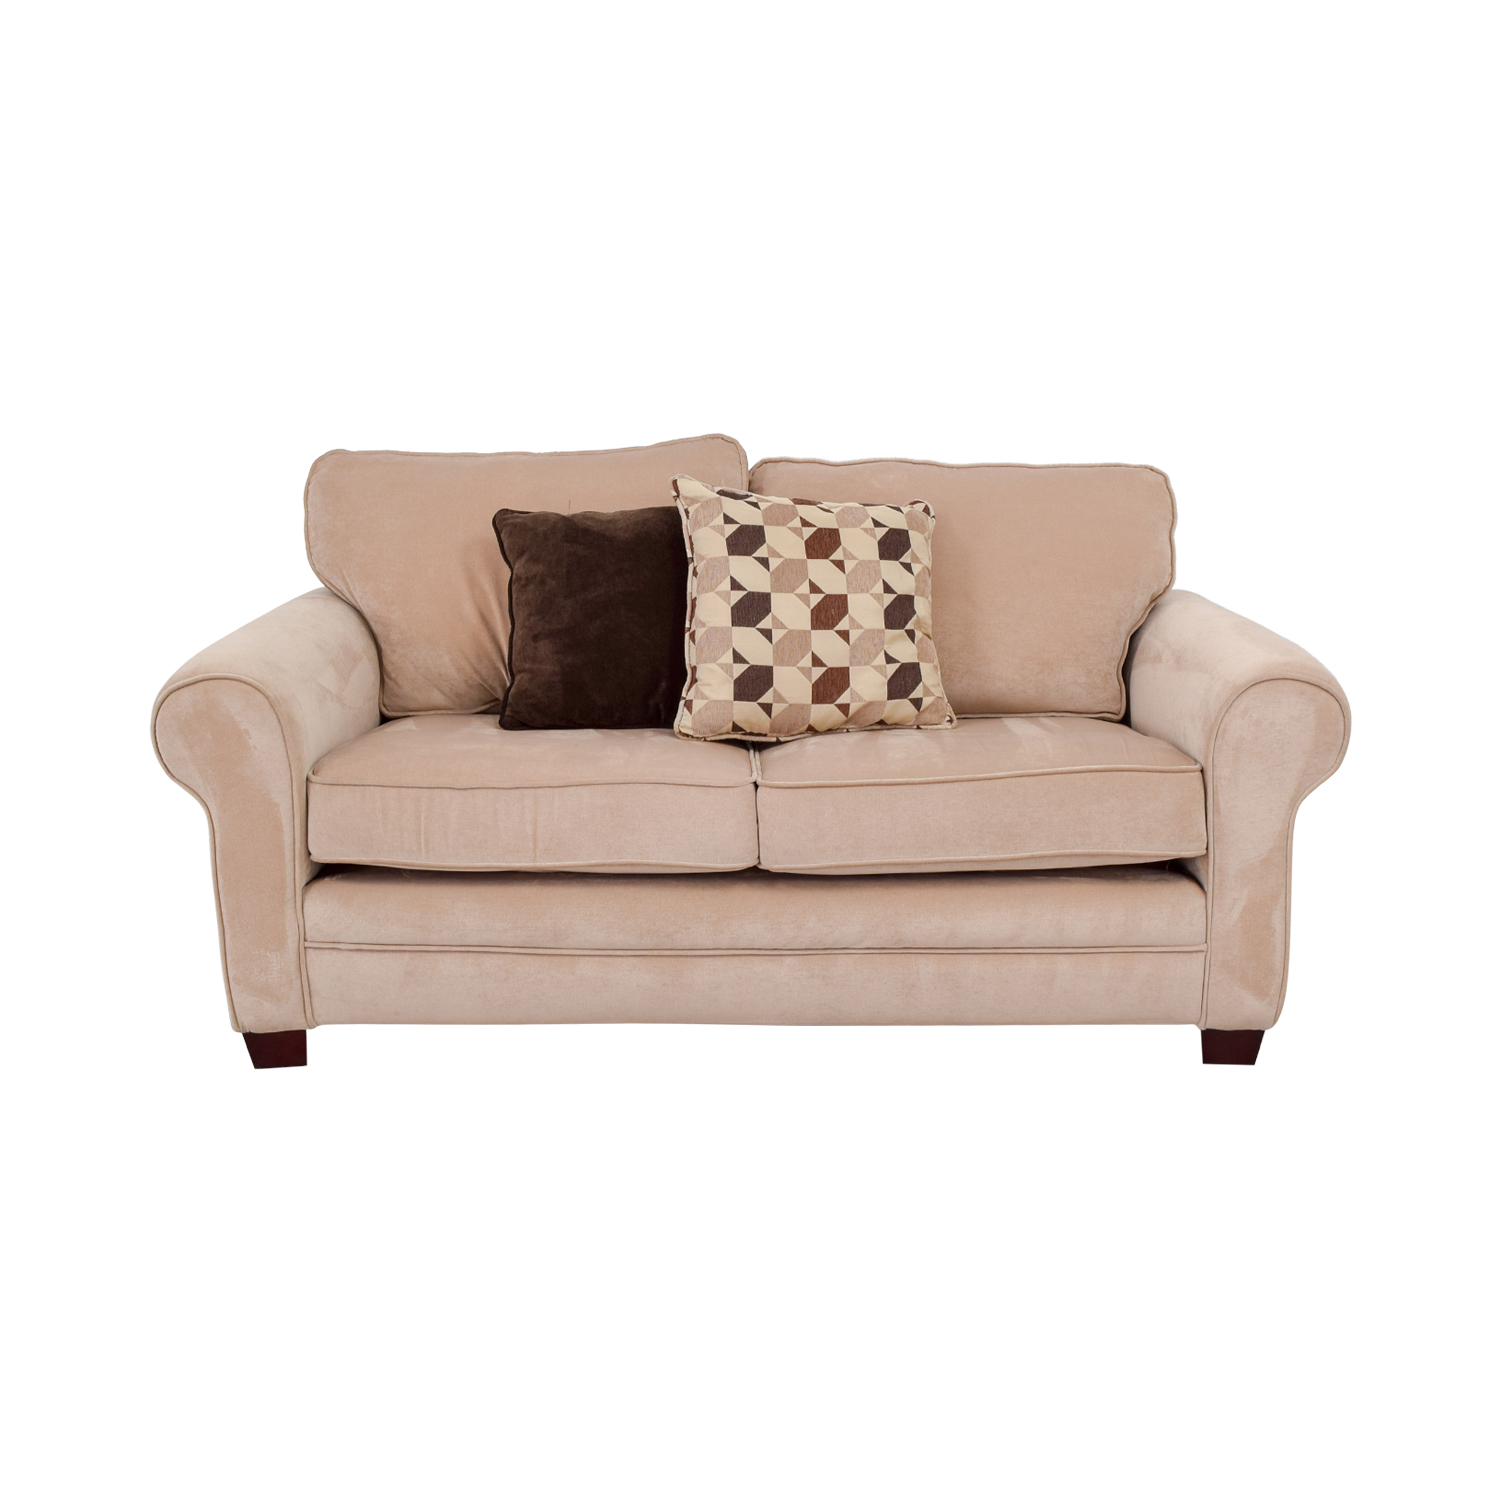 buy Bob's Furniture Maggie II Beige Two-Cushion Loveseat Bob's Furniture